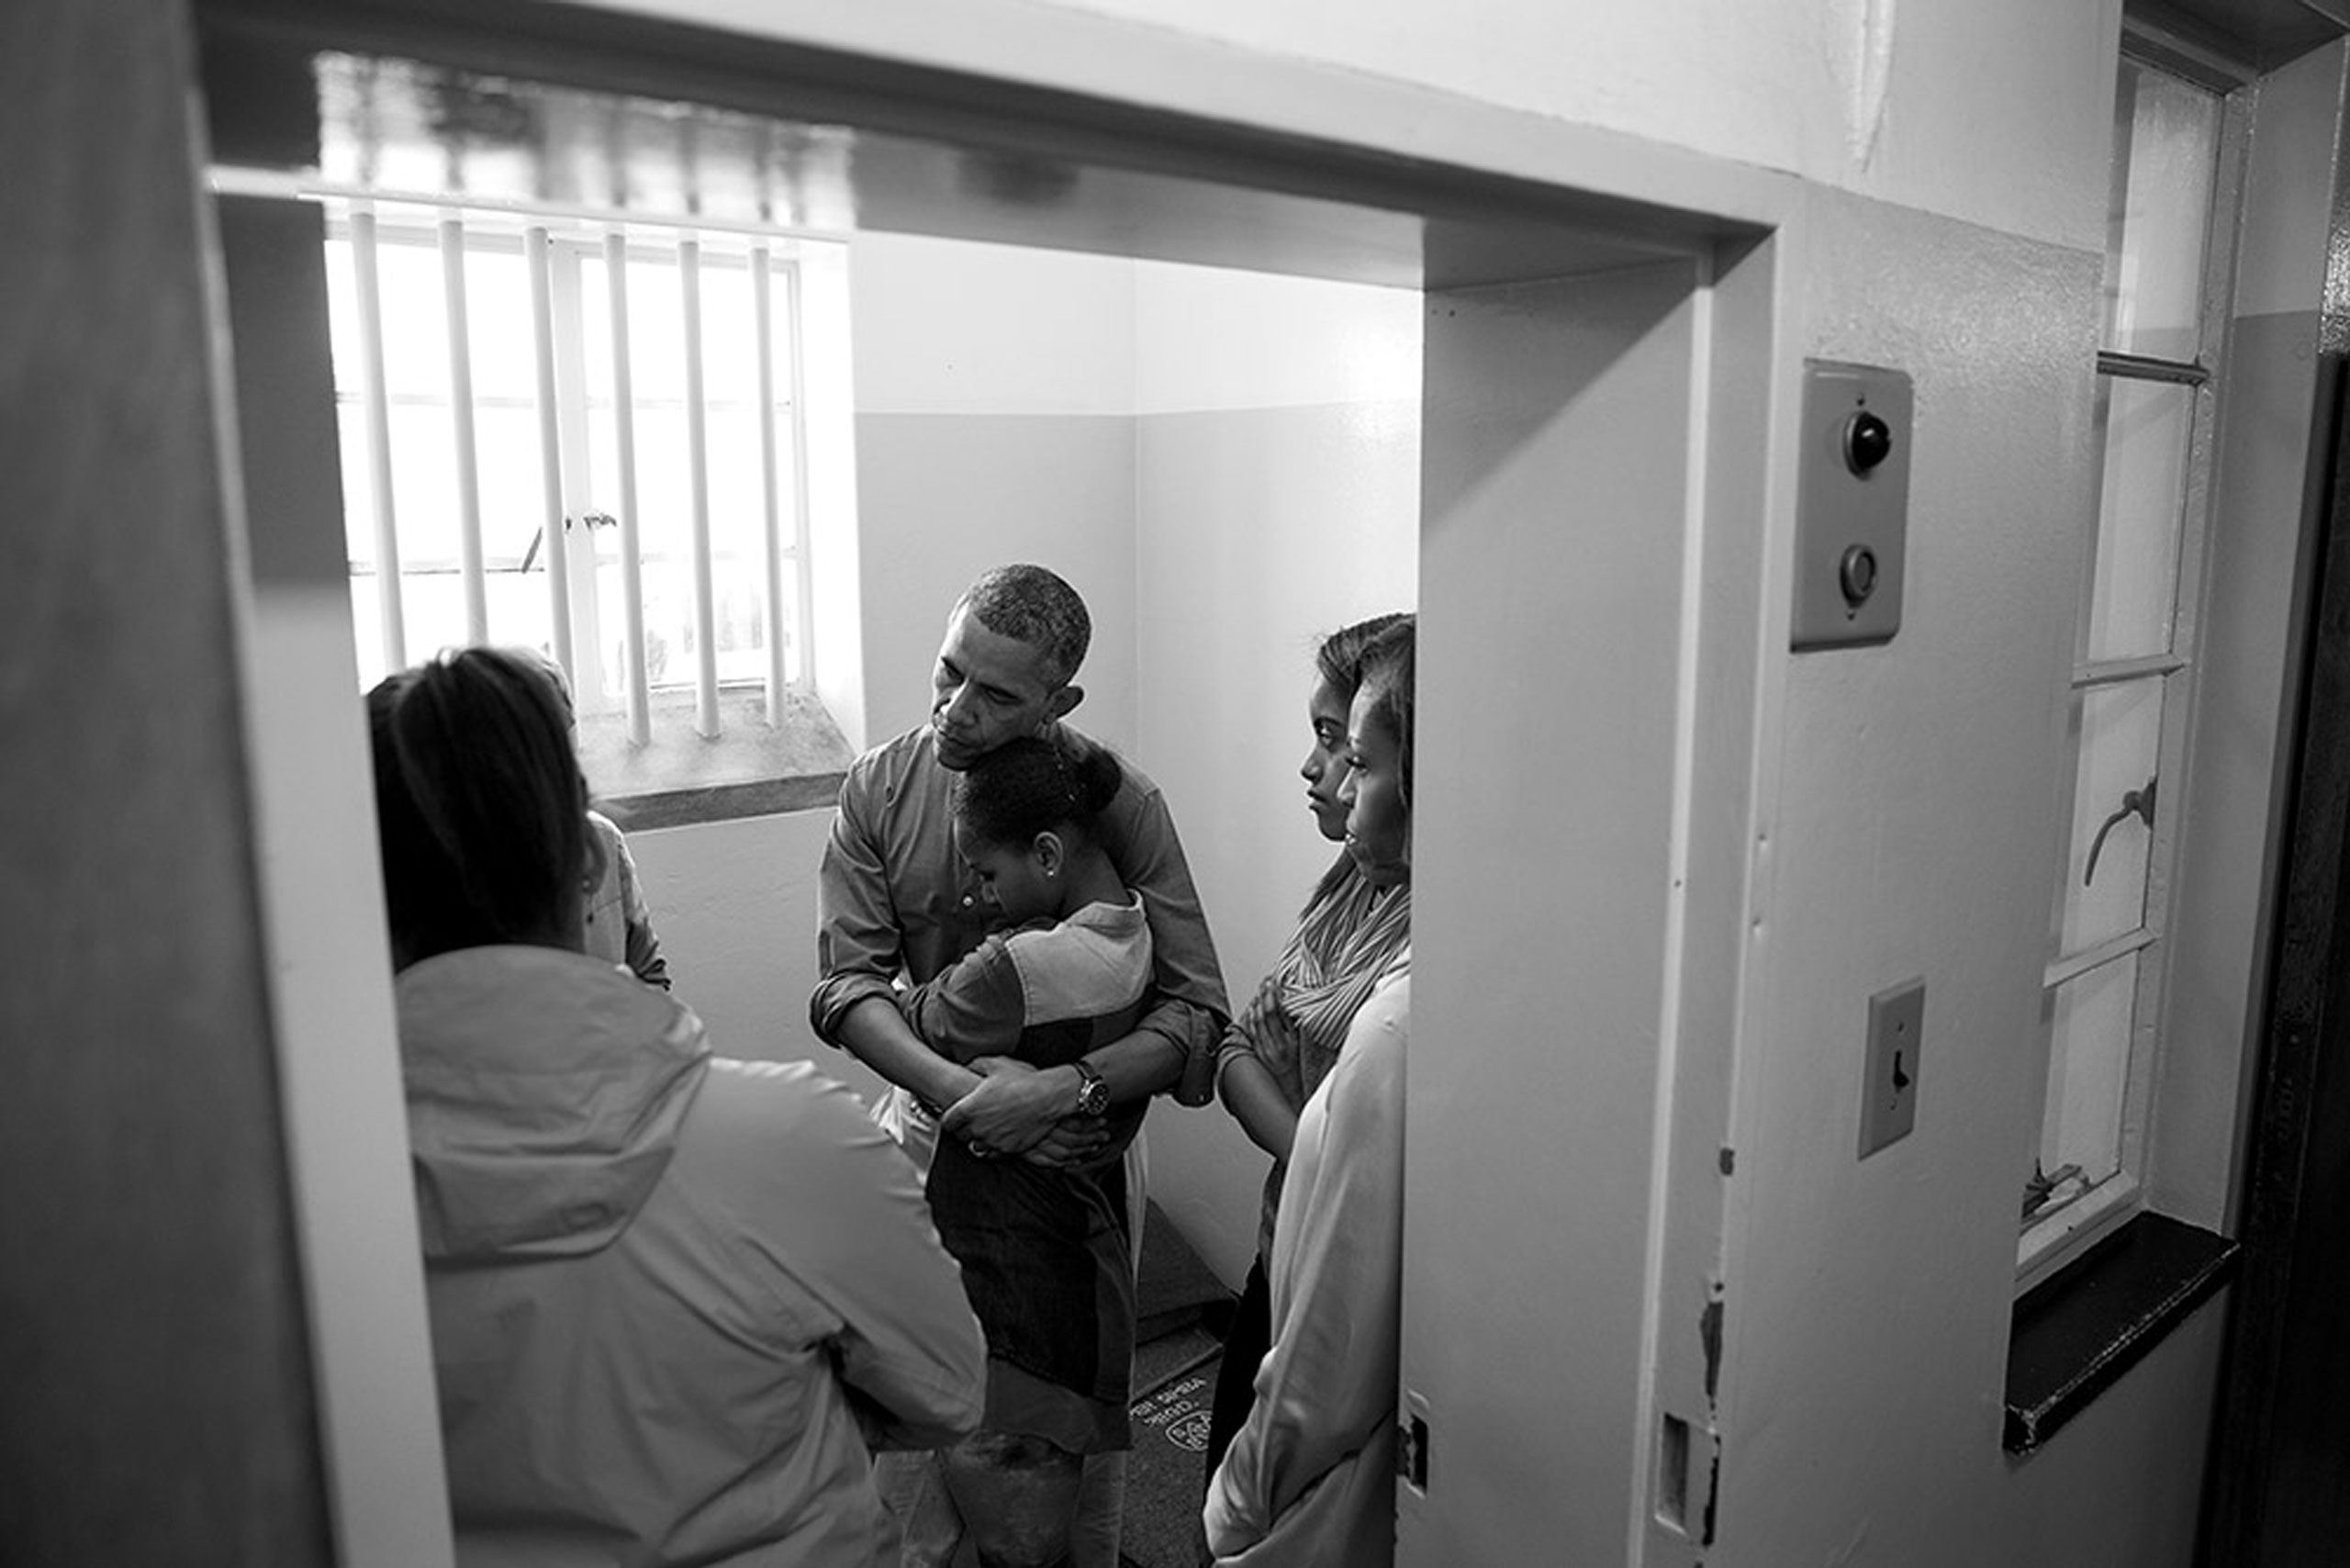 A quiet moment inside Nelson Mandela's former prison cell as the President embraced Sasha while the Obama family was listening to Ahmed Kathrada recount his years spent imprisoned here on Robben Island in Cape Town, South Africa. Nelson Mandela was imprisoned for 27 years, initially in this prison cell. Kathrada was imprisoned at Robben Island for 18 years,  June 30, 2013.